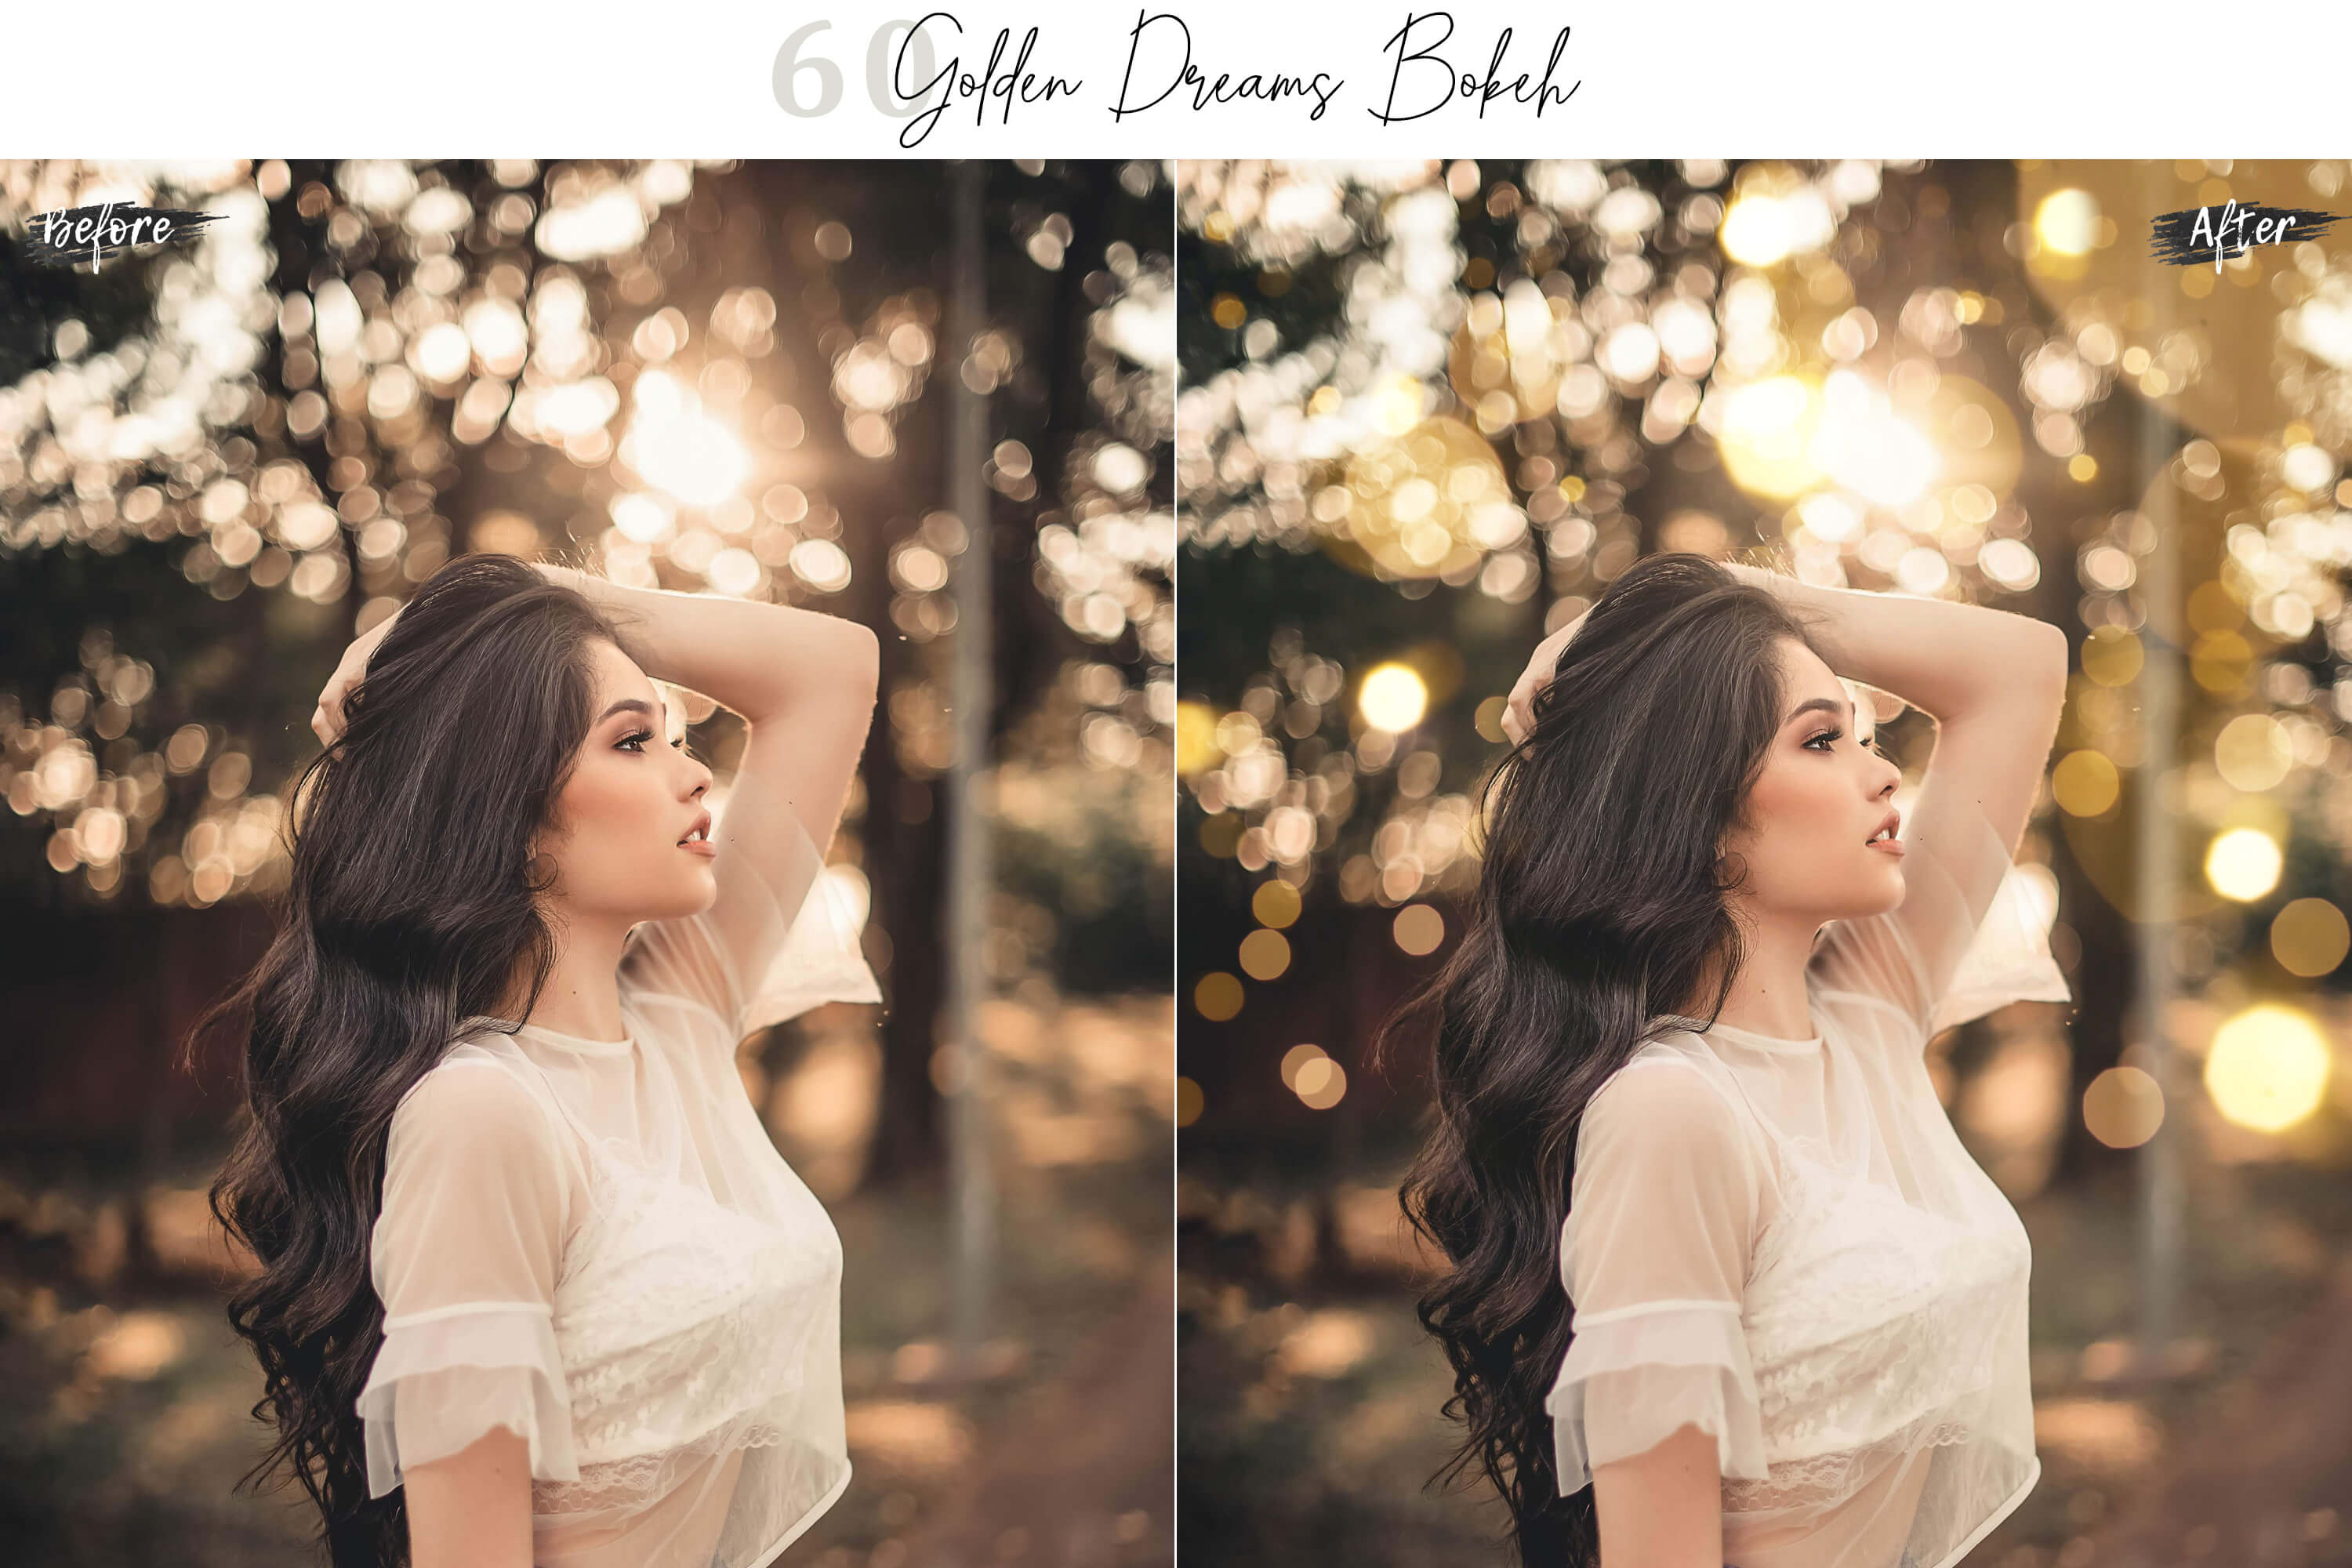 60 Golden Dreams Bokeh lights Effect Photo Overlay example image 2